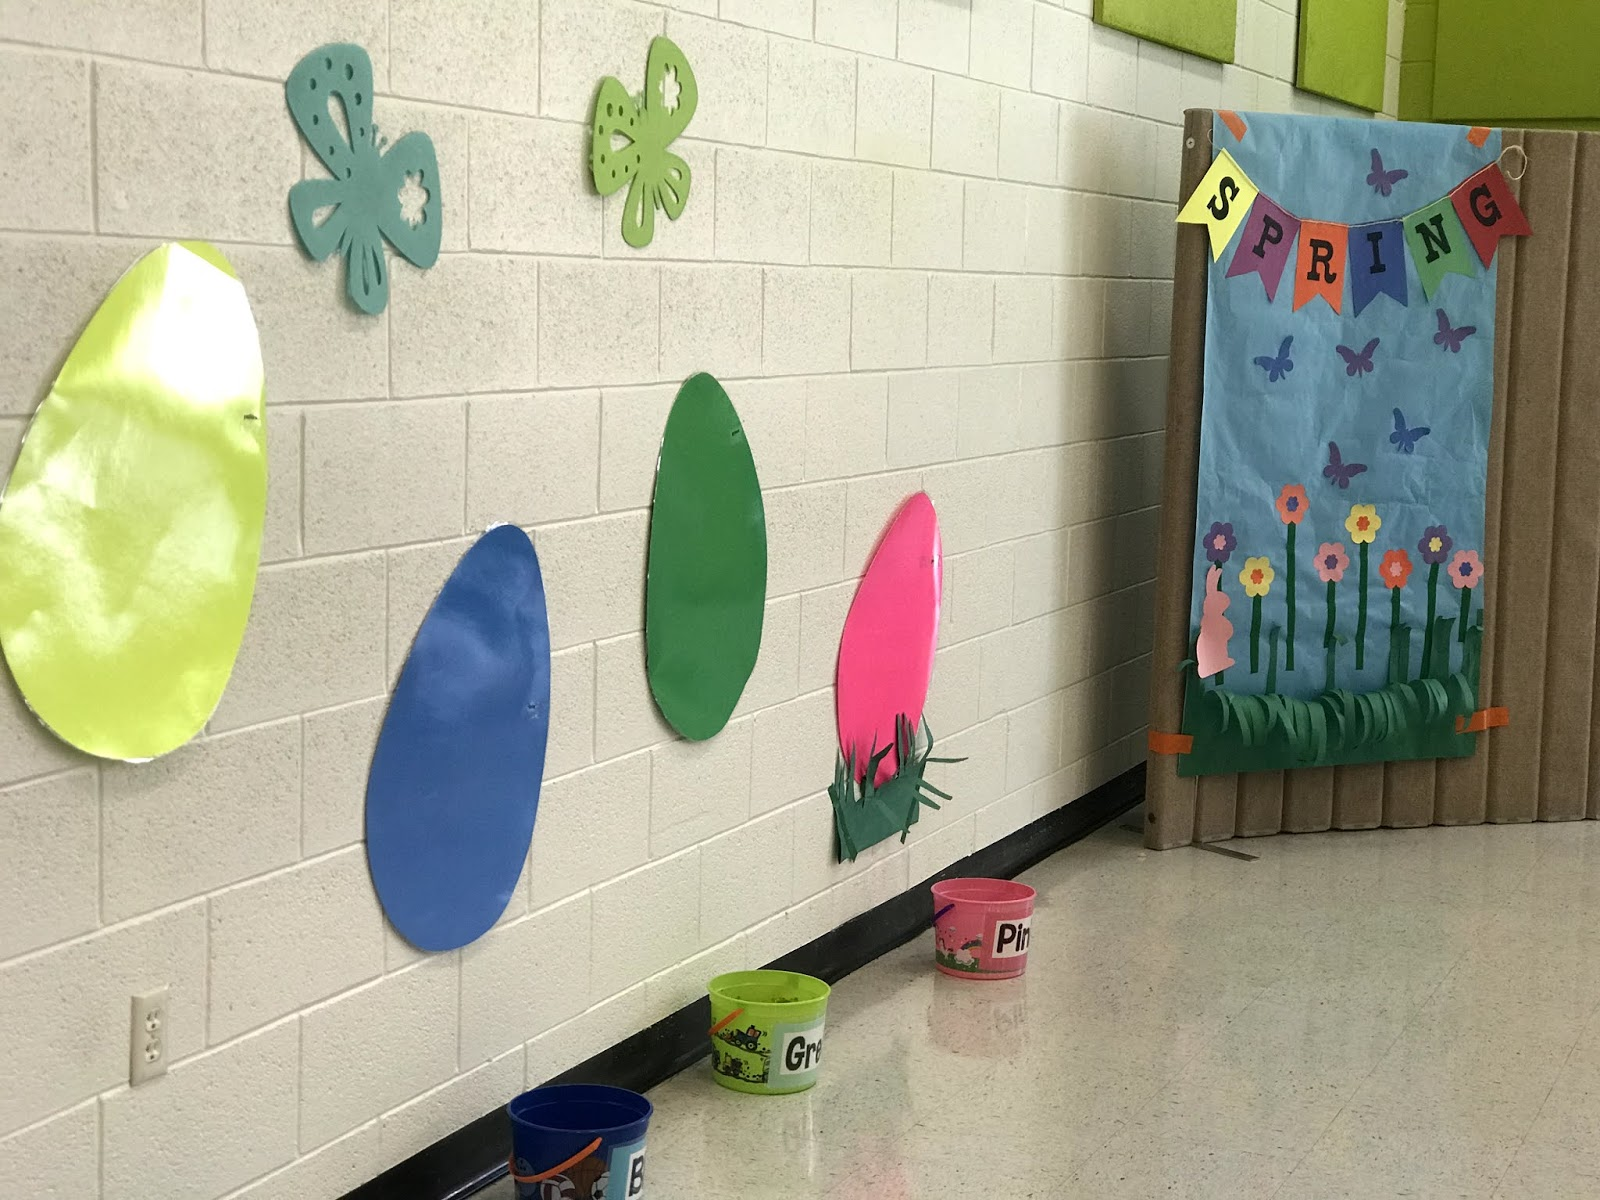 an image of the large colorful eggs taped to the wall